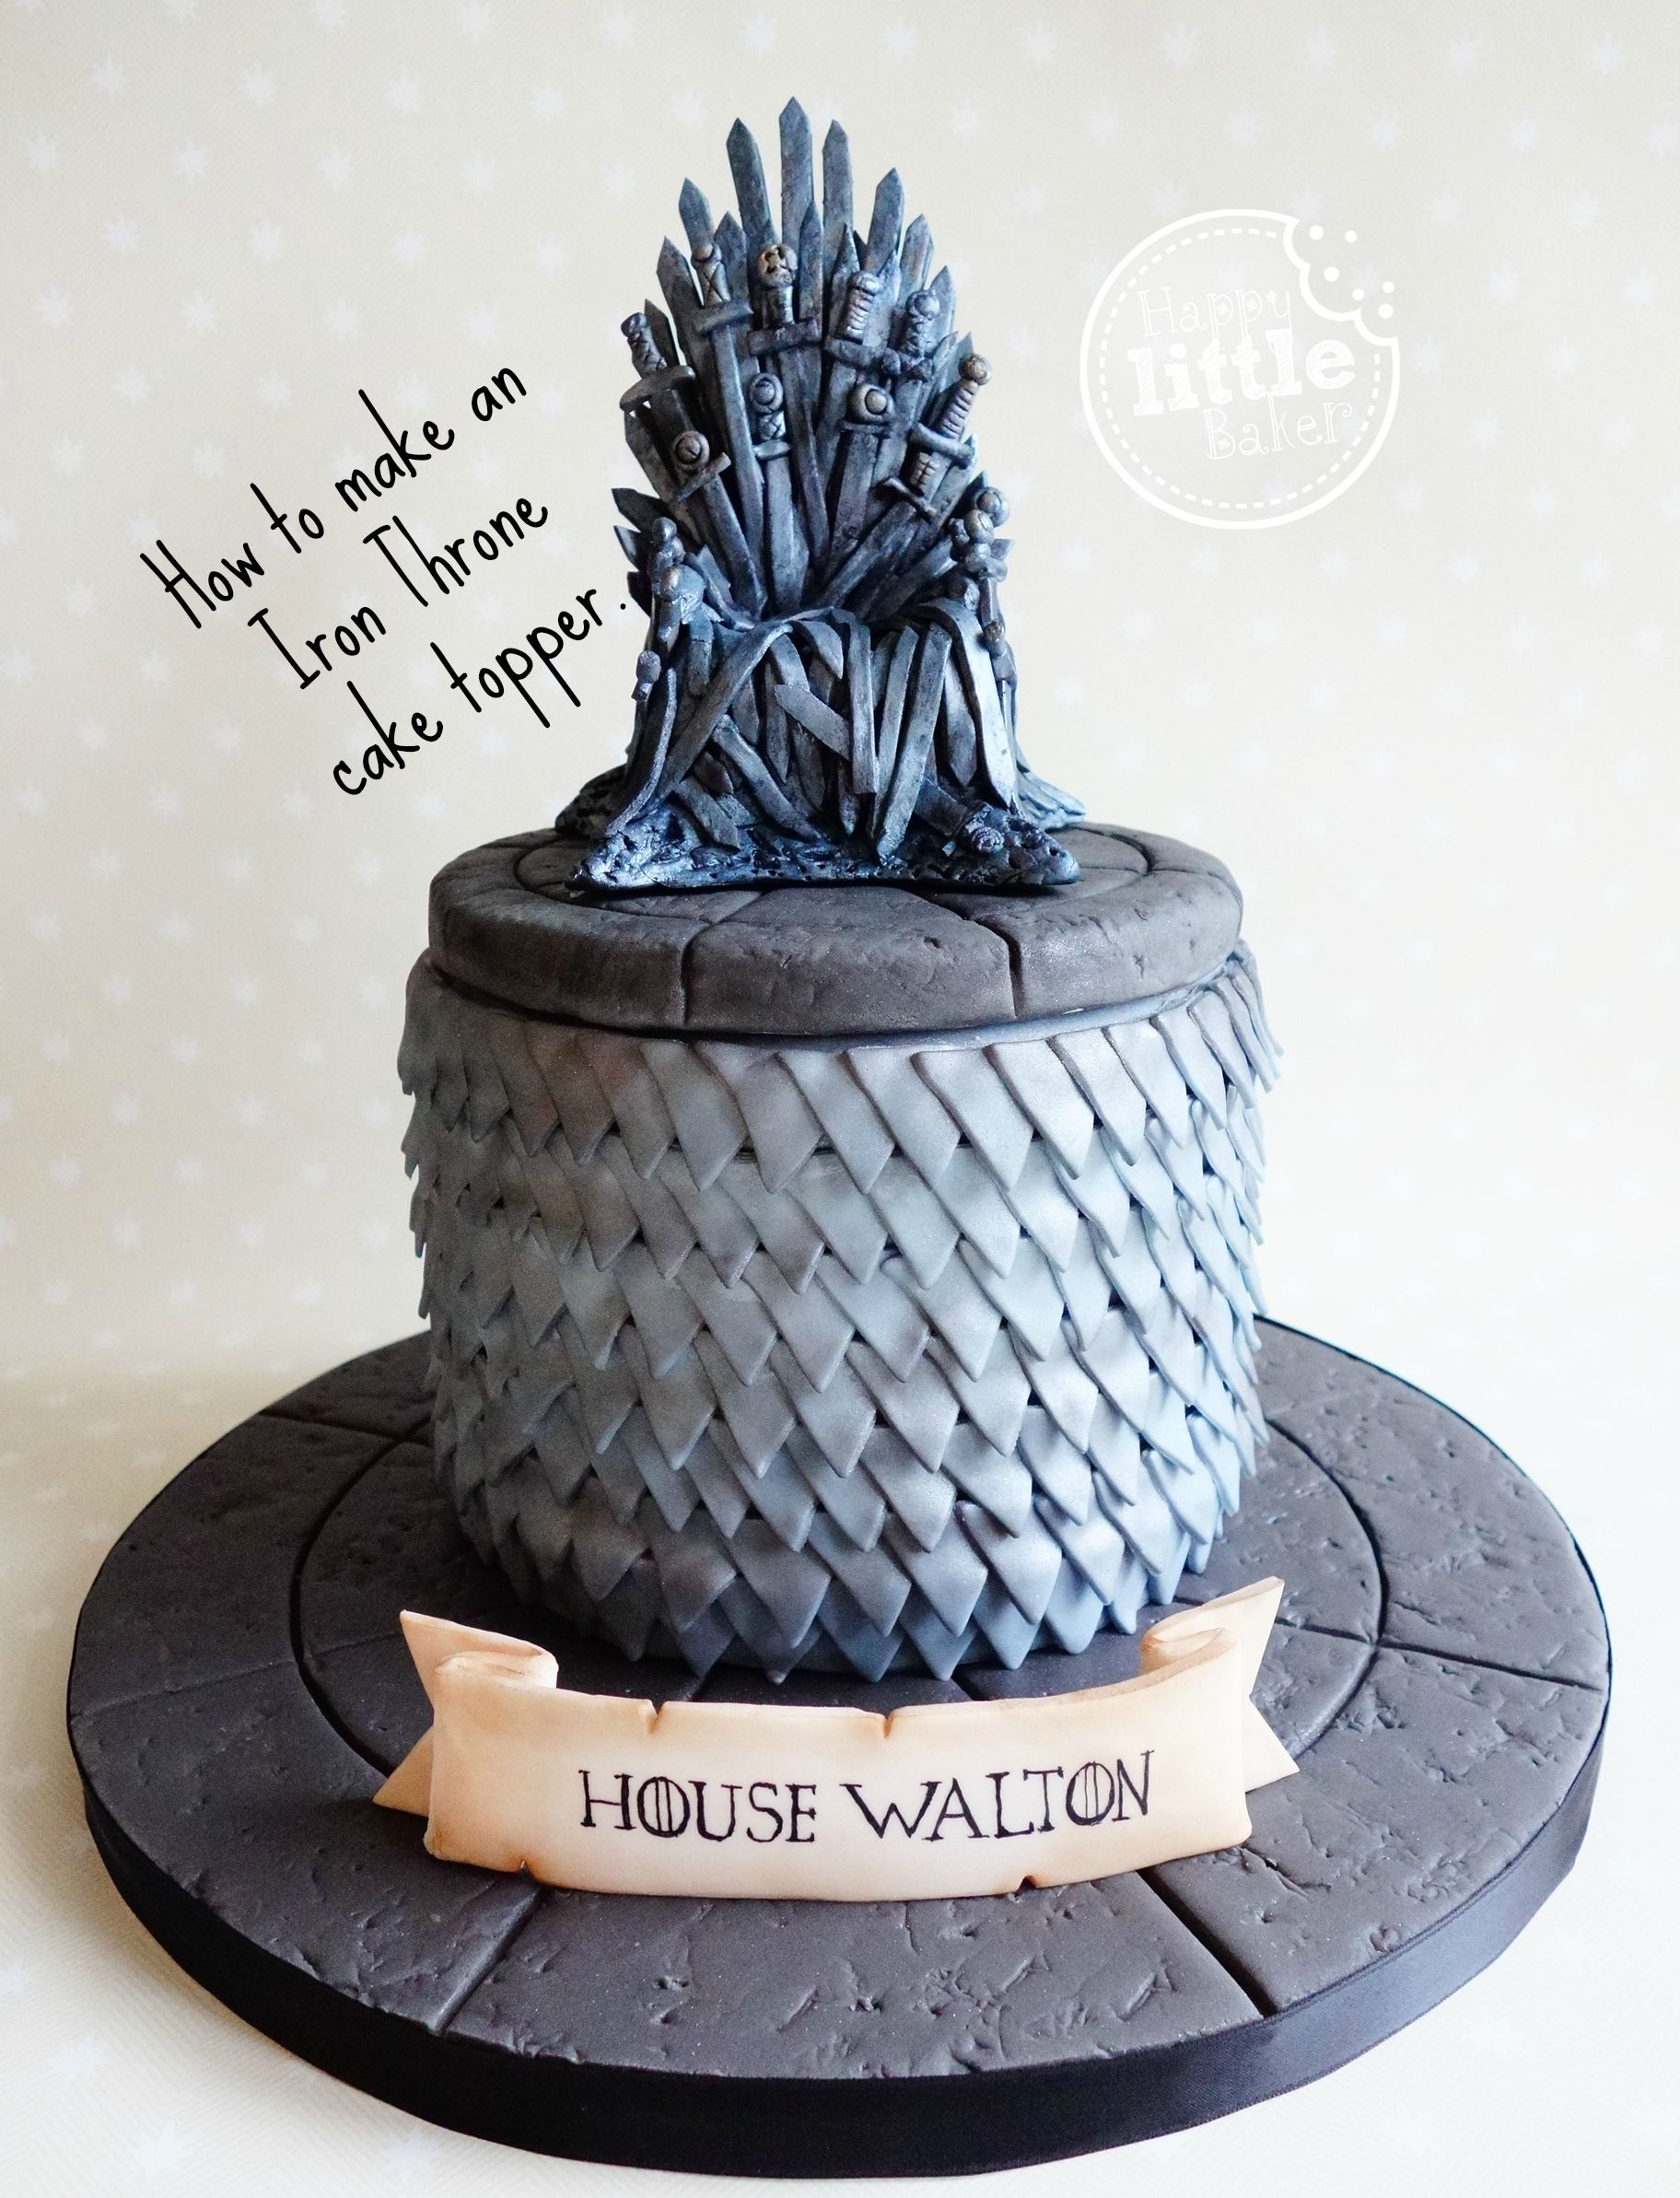 Game of thrones chair cake - How To Make A Game Of Thrones Iron Throne Cake Topper